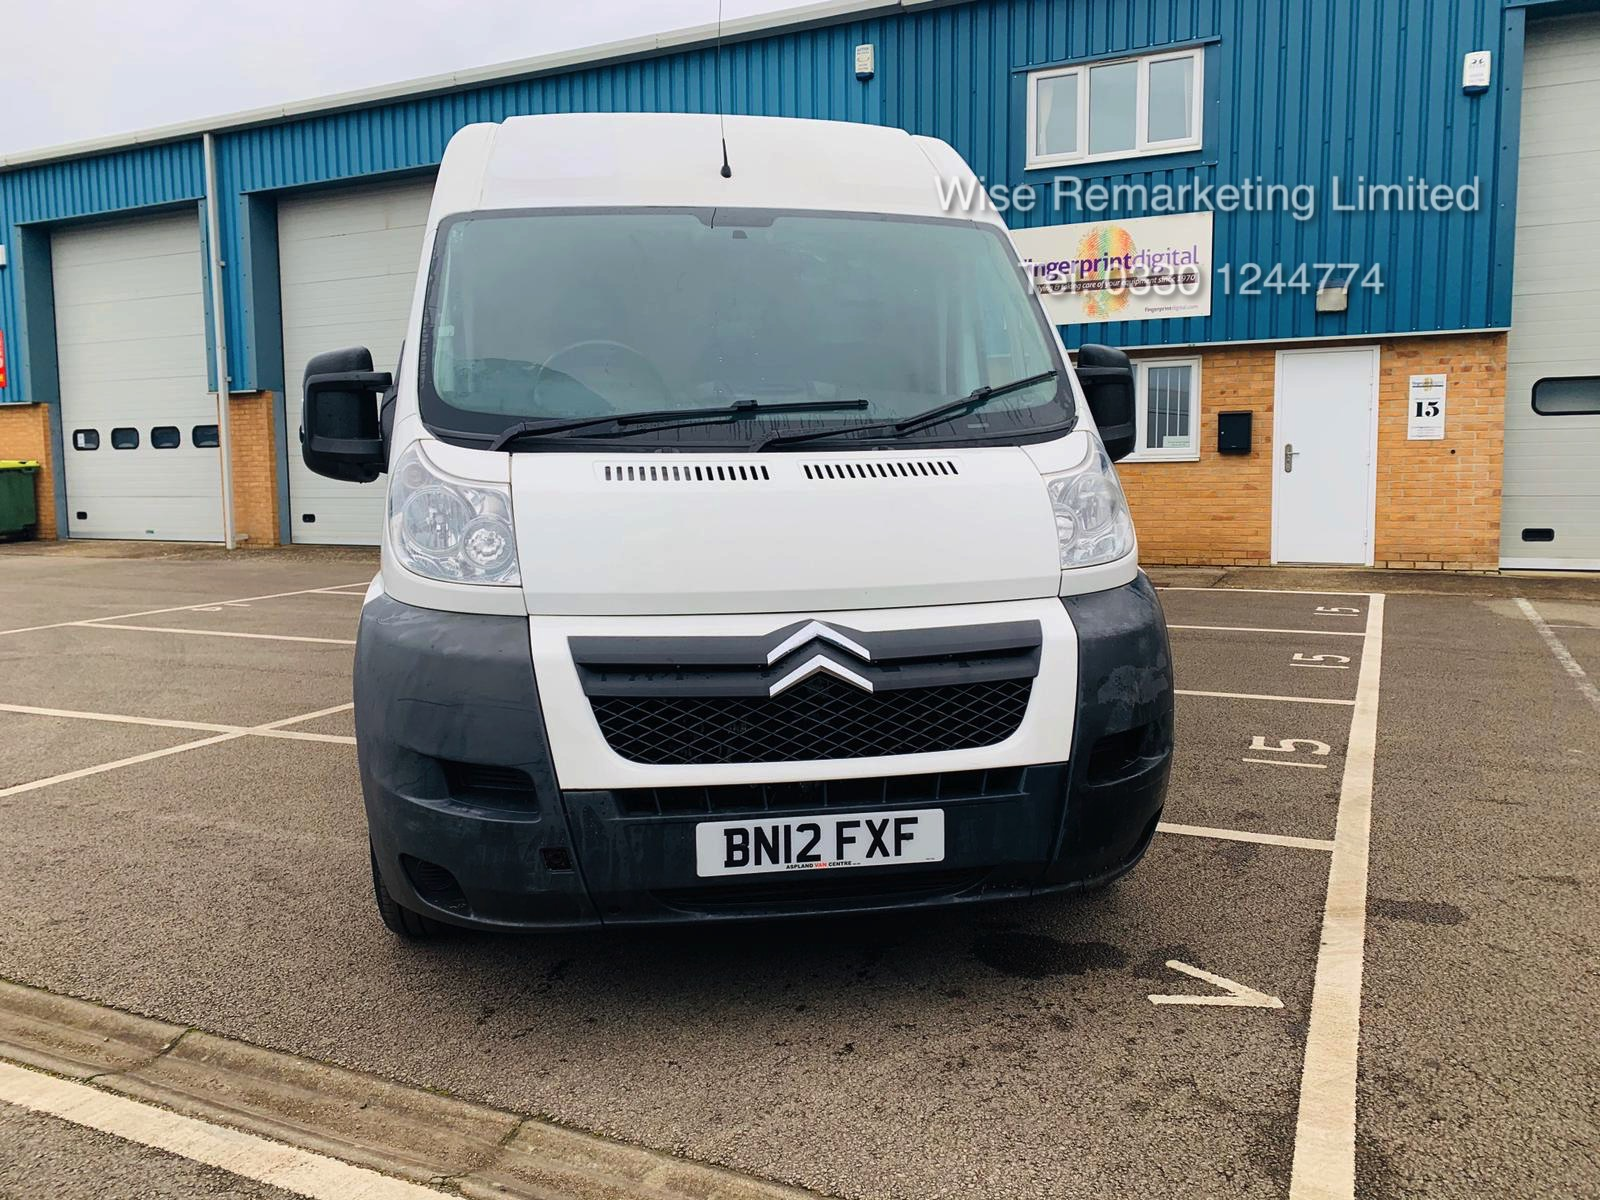 Citroen Relay 35 2.2 HDi (130 BHP) LWB 2012 12 Reg - 6 Speed - Ply Lined SAVE 20% NO VAT - Image 3 of 20